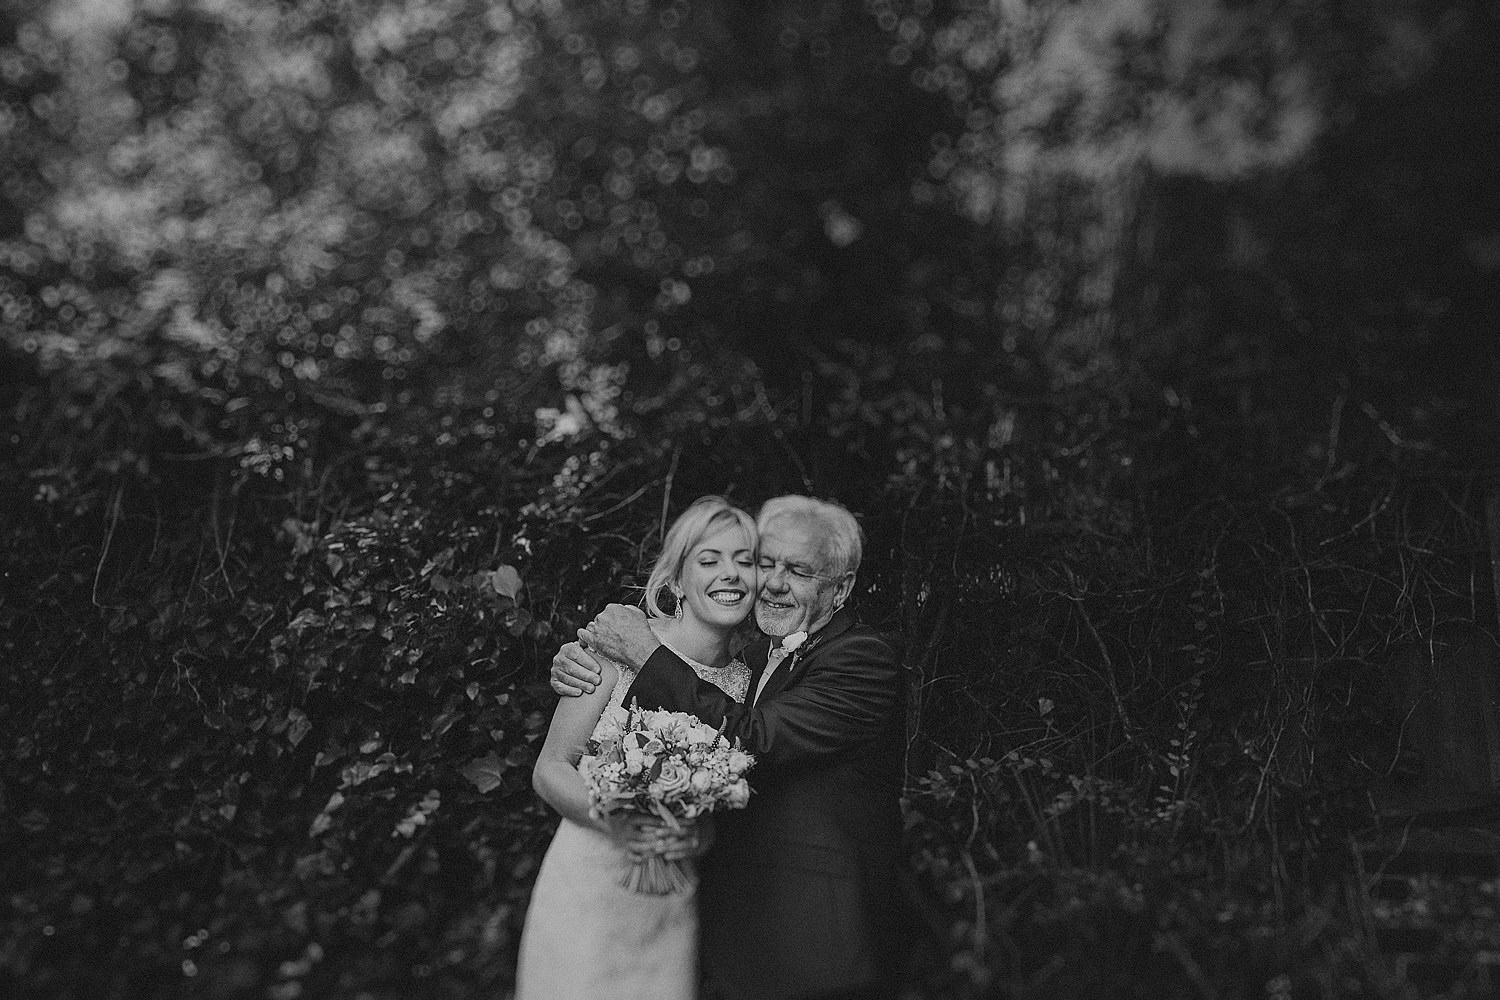 best-of-wedding-photography-2015-45.JPG